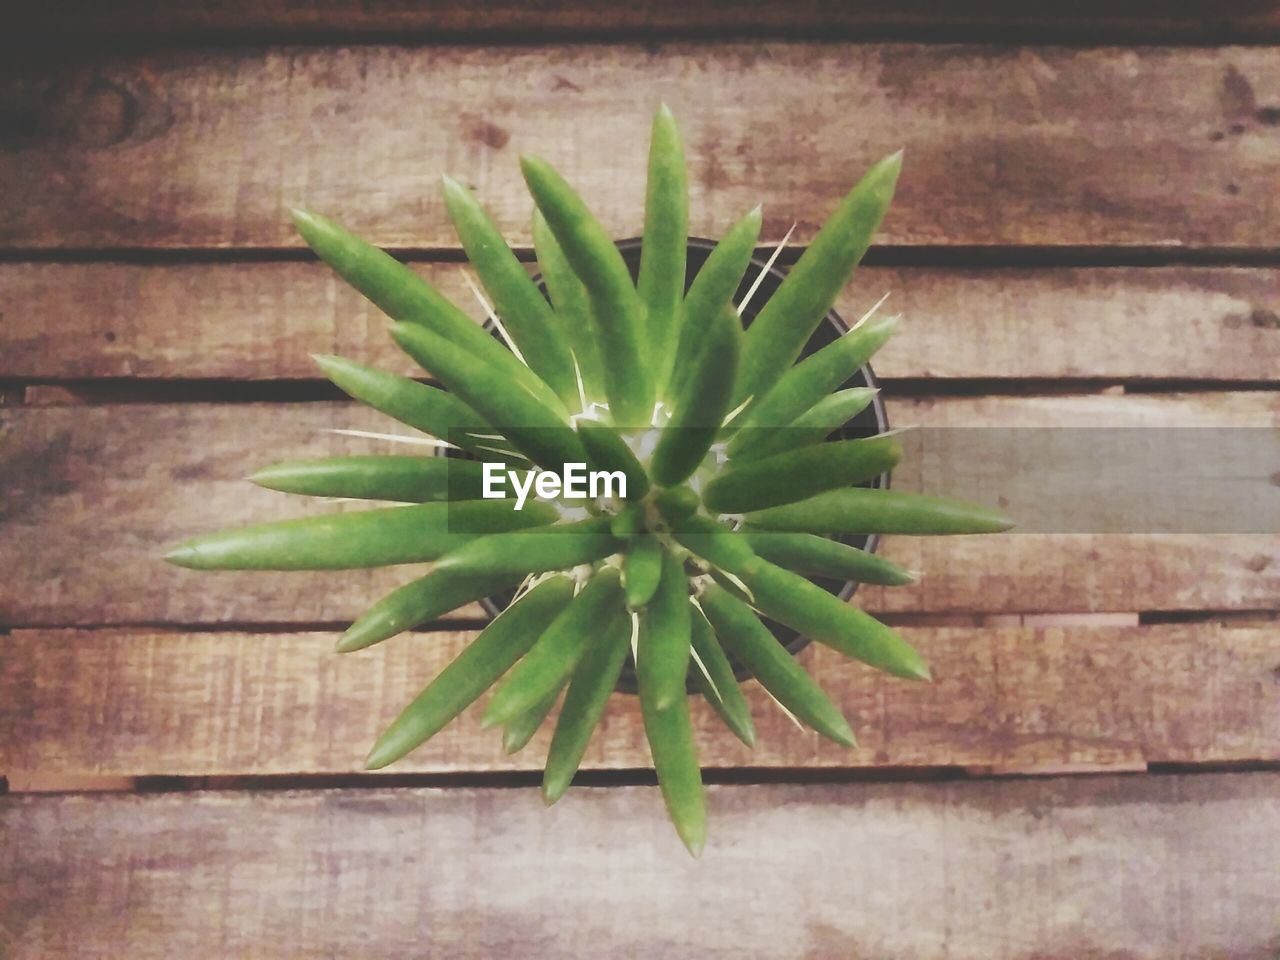 green color, growth, plant, nature, no people, aloe vera plant, wood - material, cactus, indoors, close-up, day, spiked, beauty in nature, freshness, leaf, healthy eating